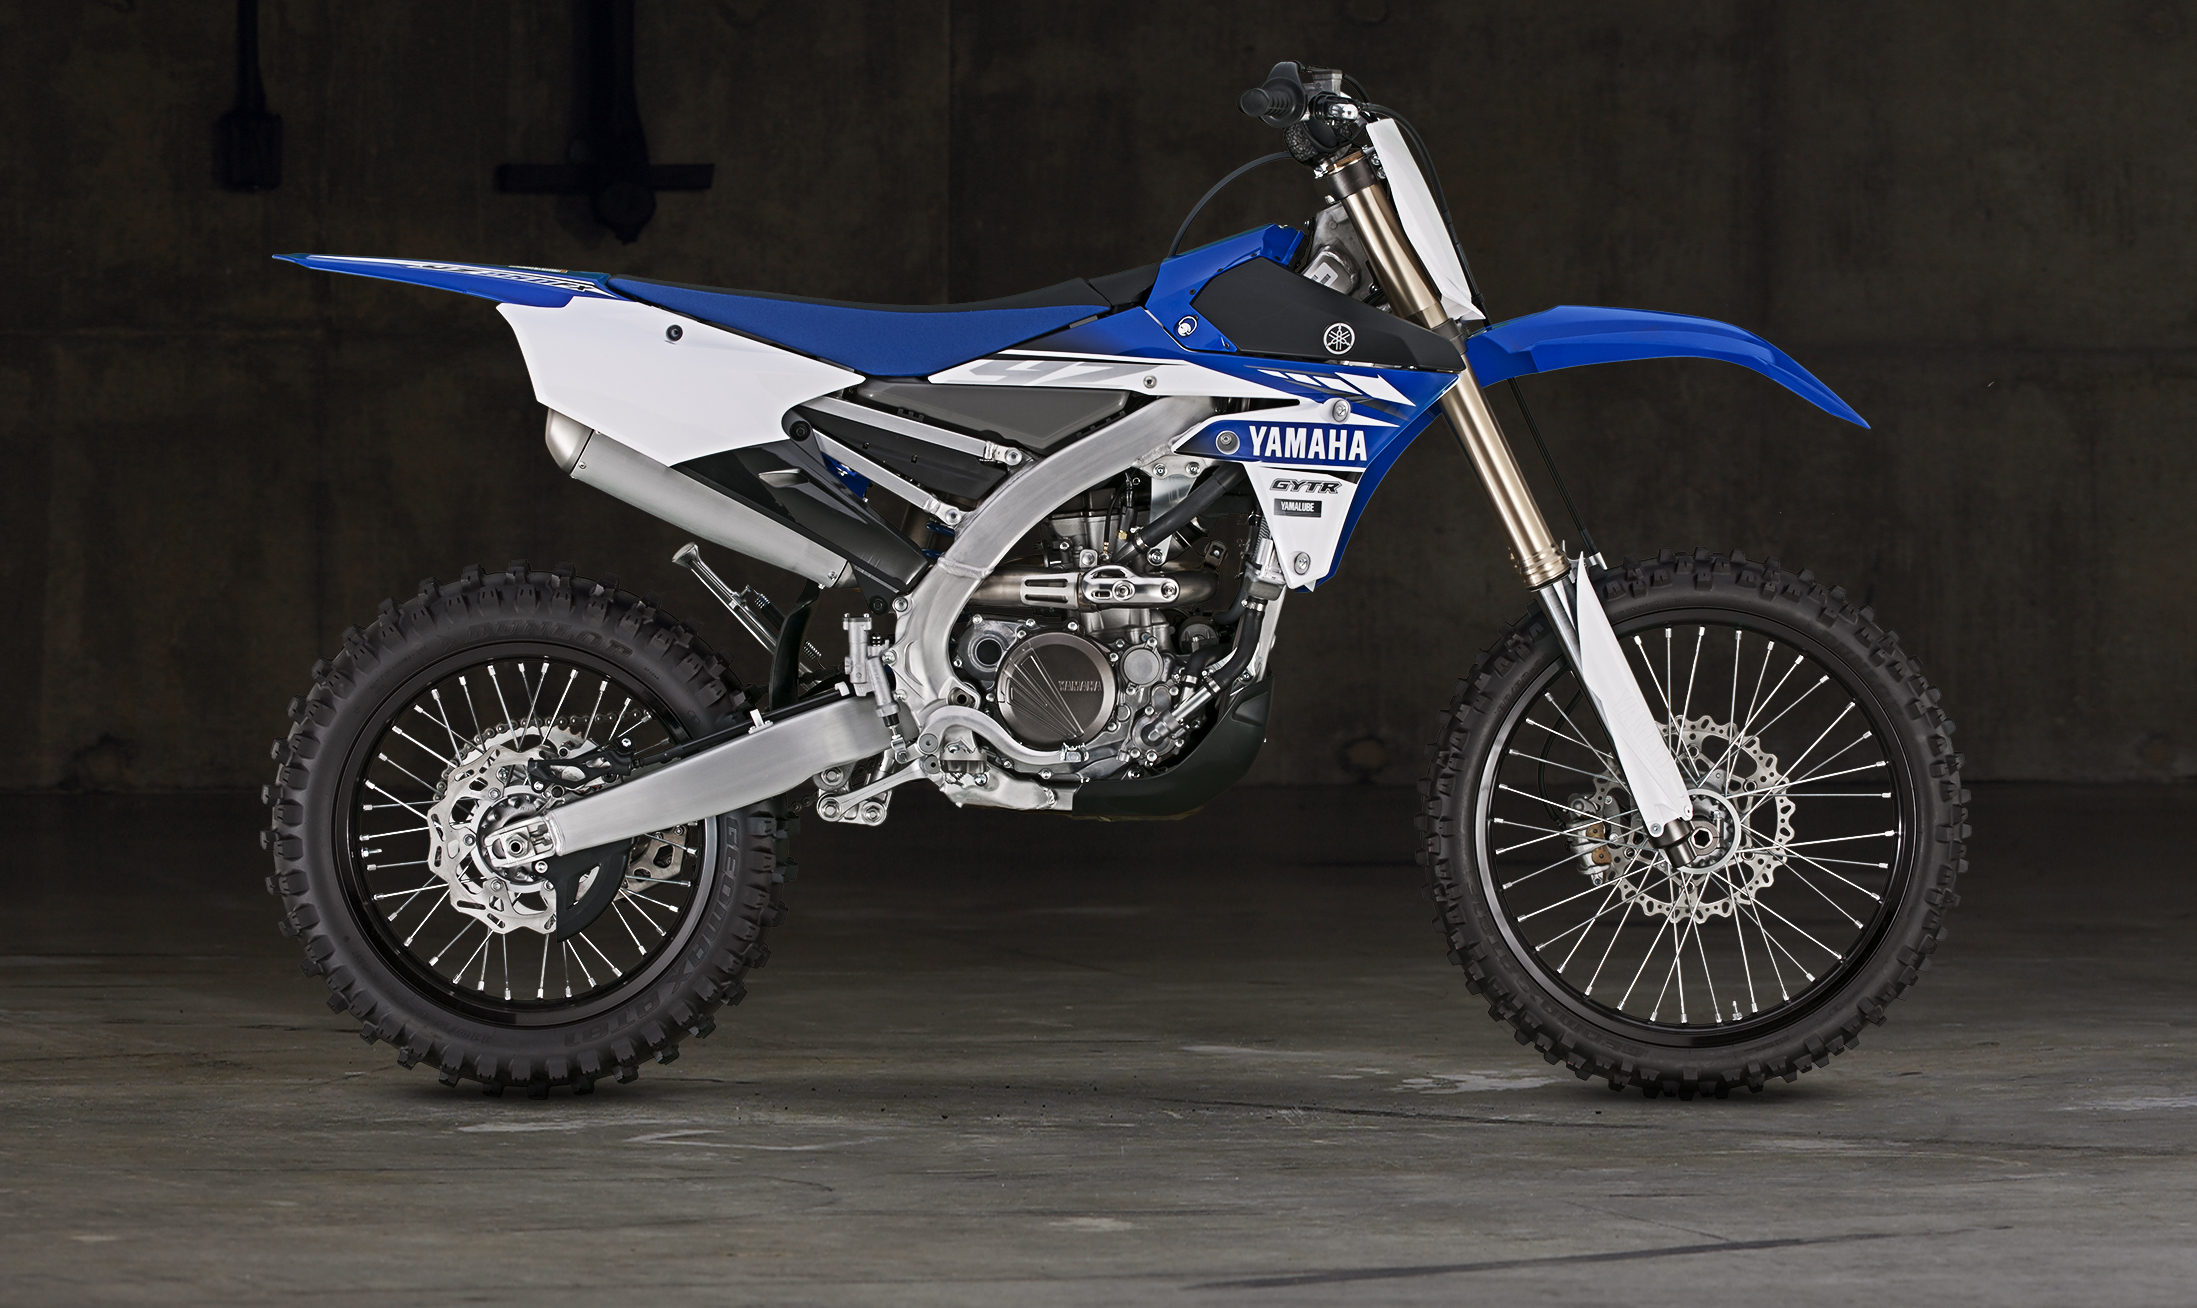 Yz 250 2019 >> 2017 Yamaha YZ250FX Cross Country Motorcycle - 360 View